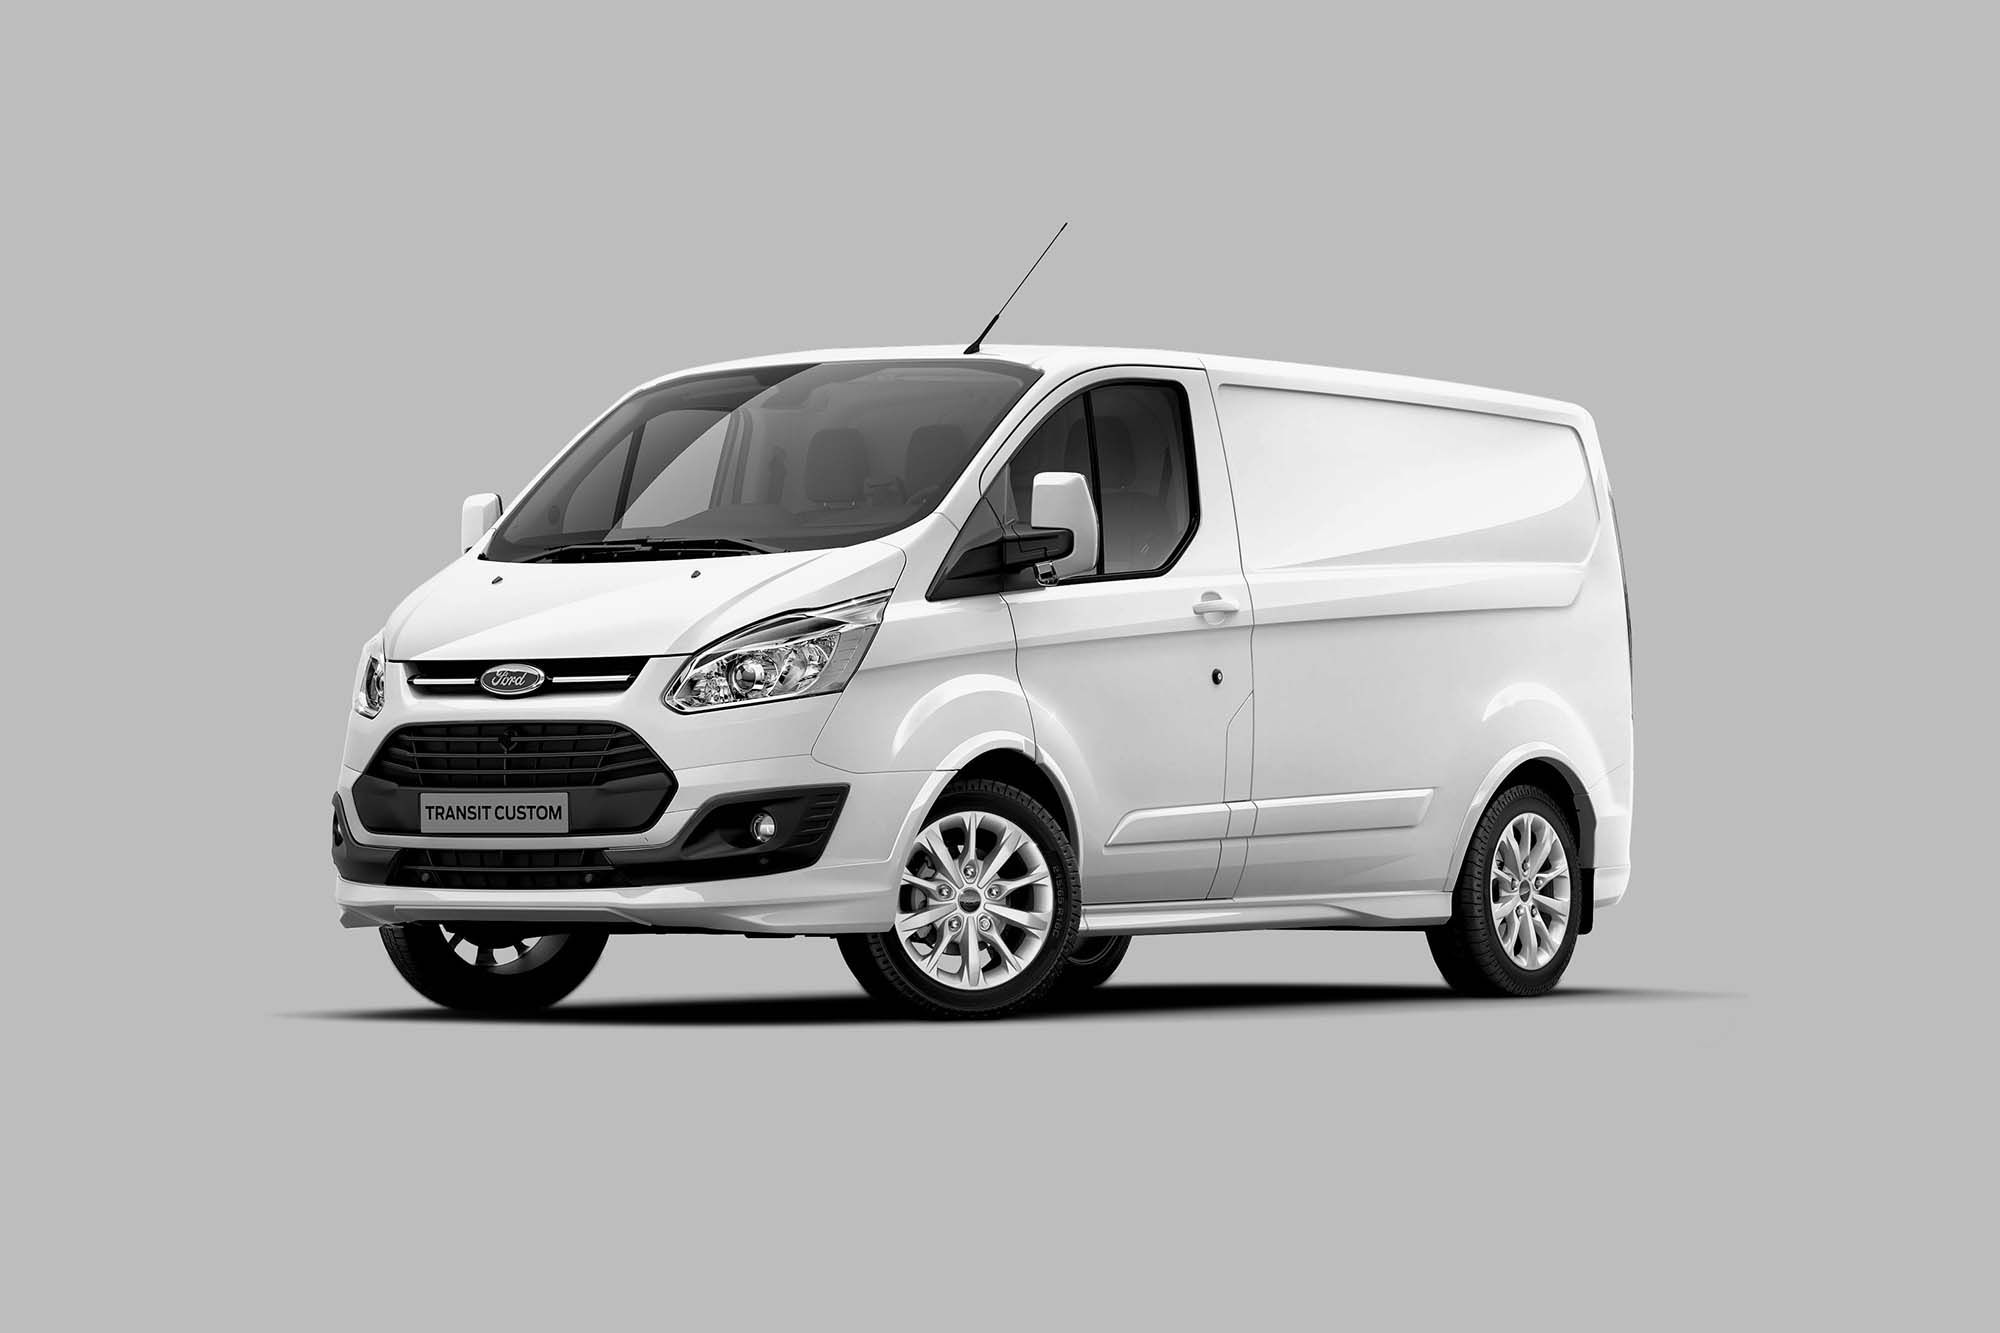 Free Ford Van Mockup Vehicle Sign Branding In 2020 Transit Custom Ford Transit Ford Van